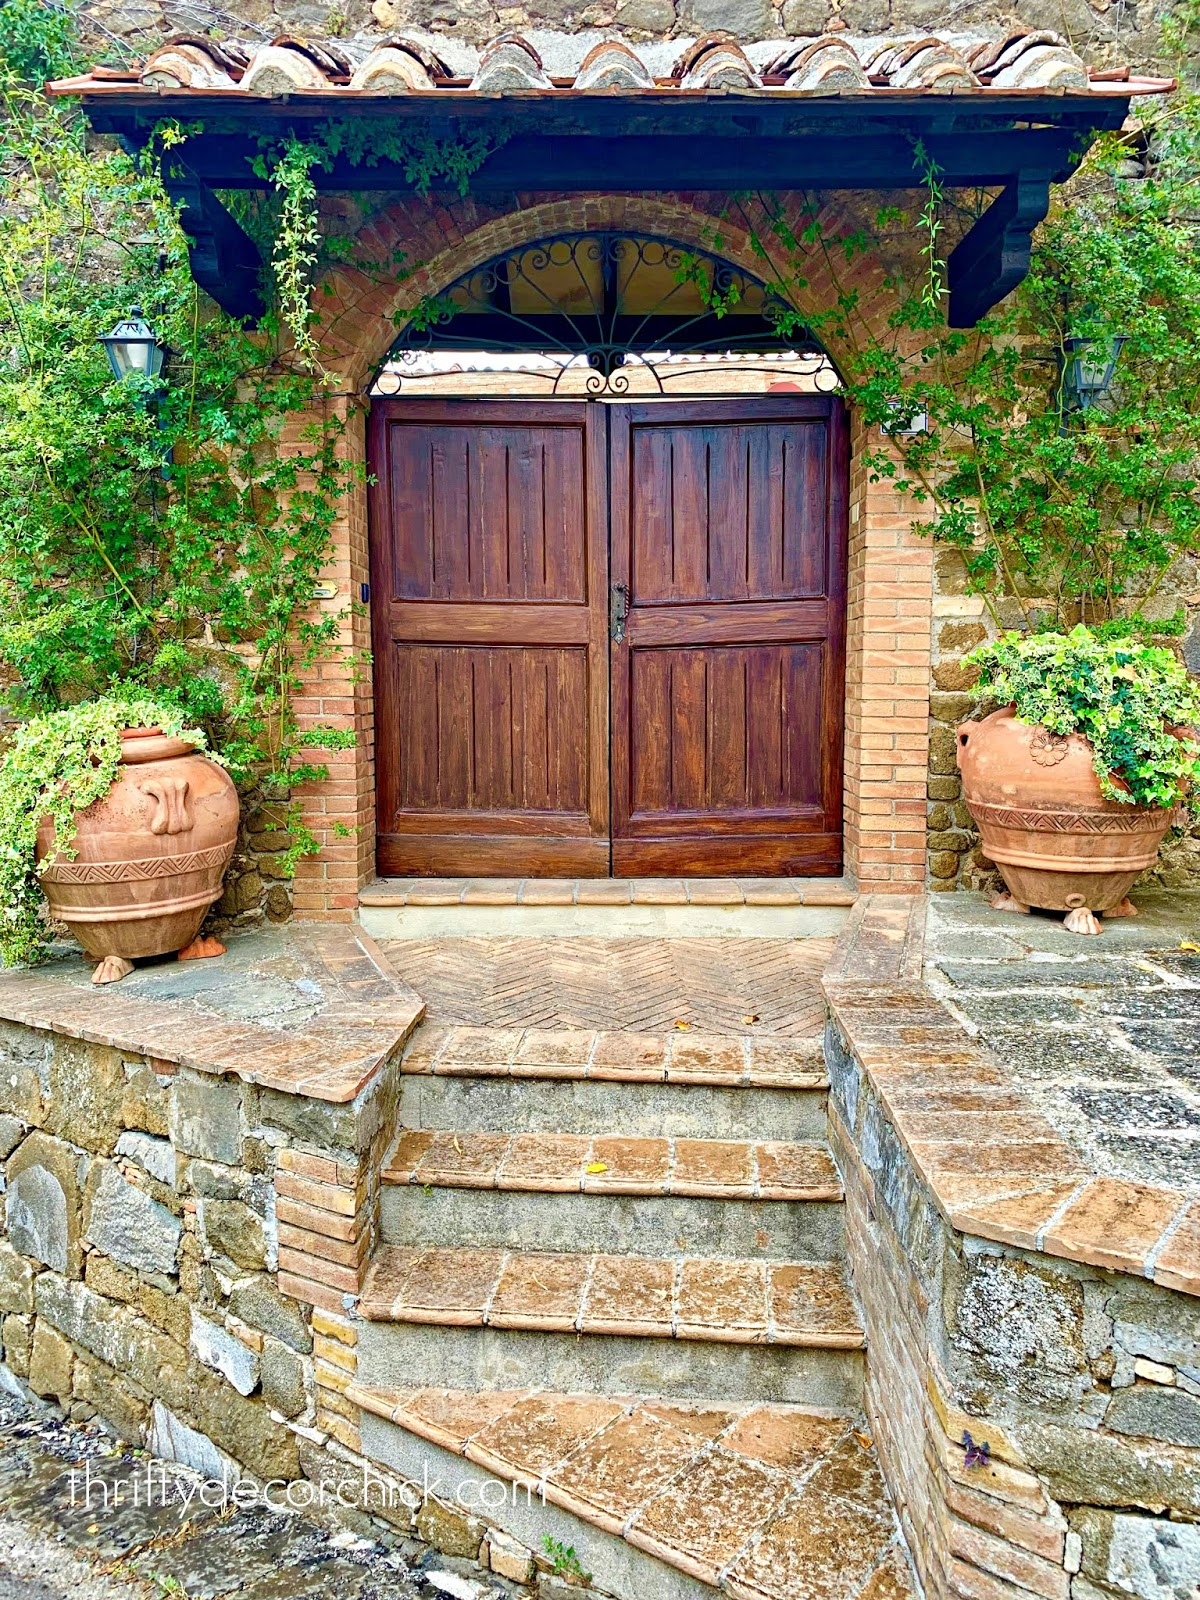 Double wood doors in Italy